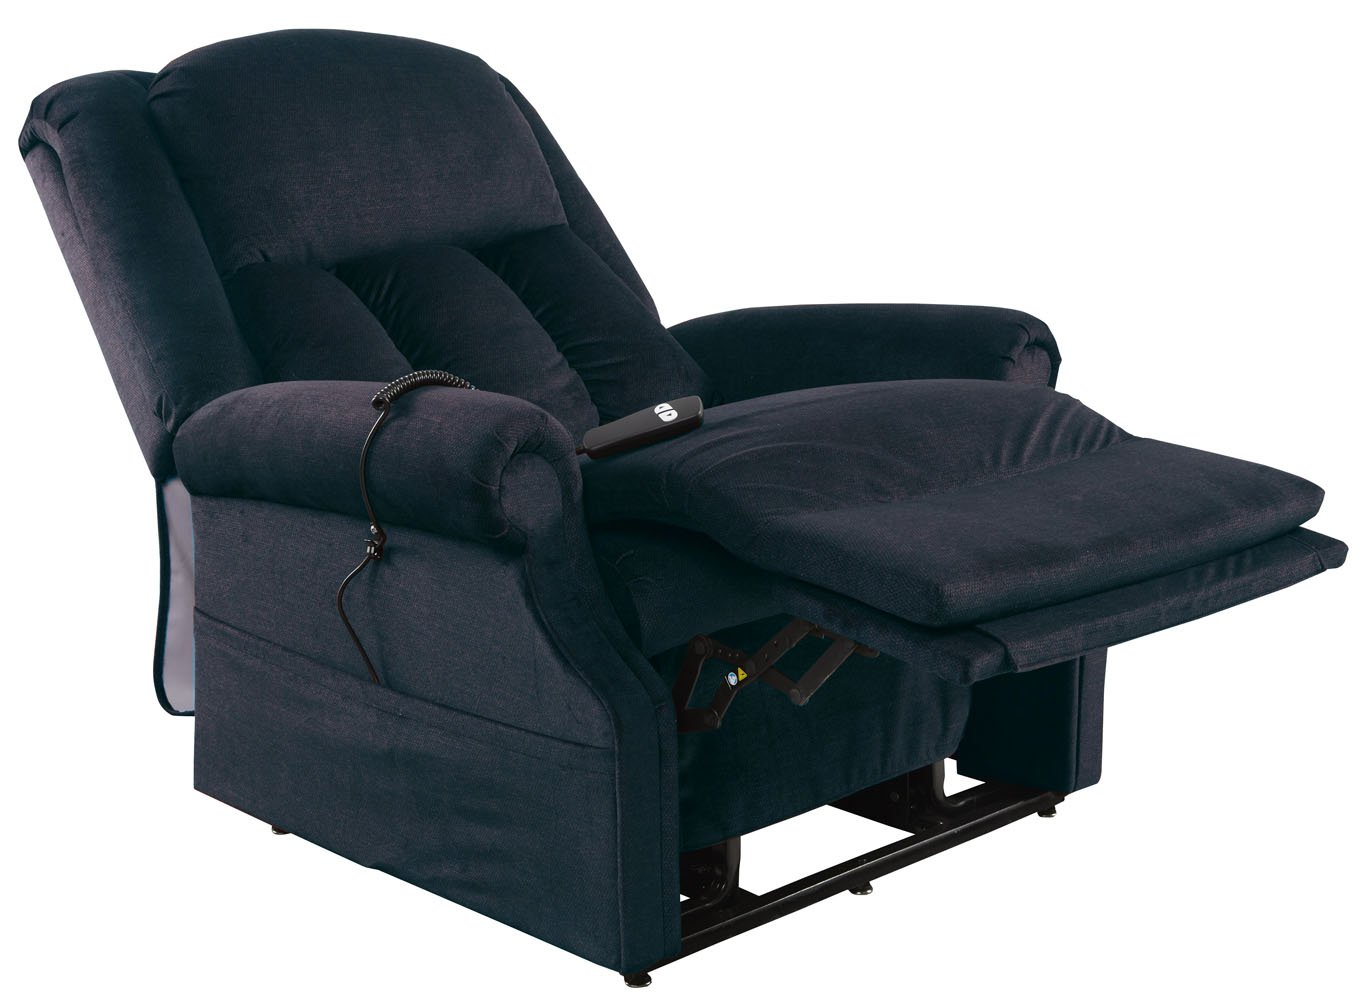 big and tall recliner chair folding no back oversized man recliners for heavy people